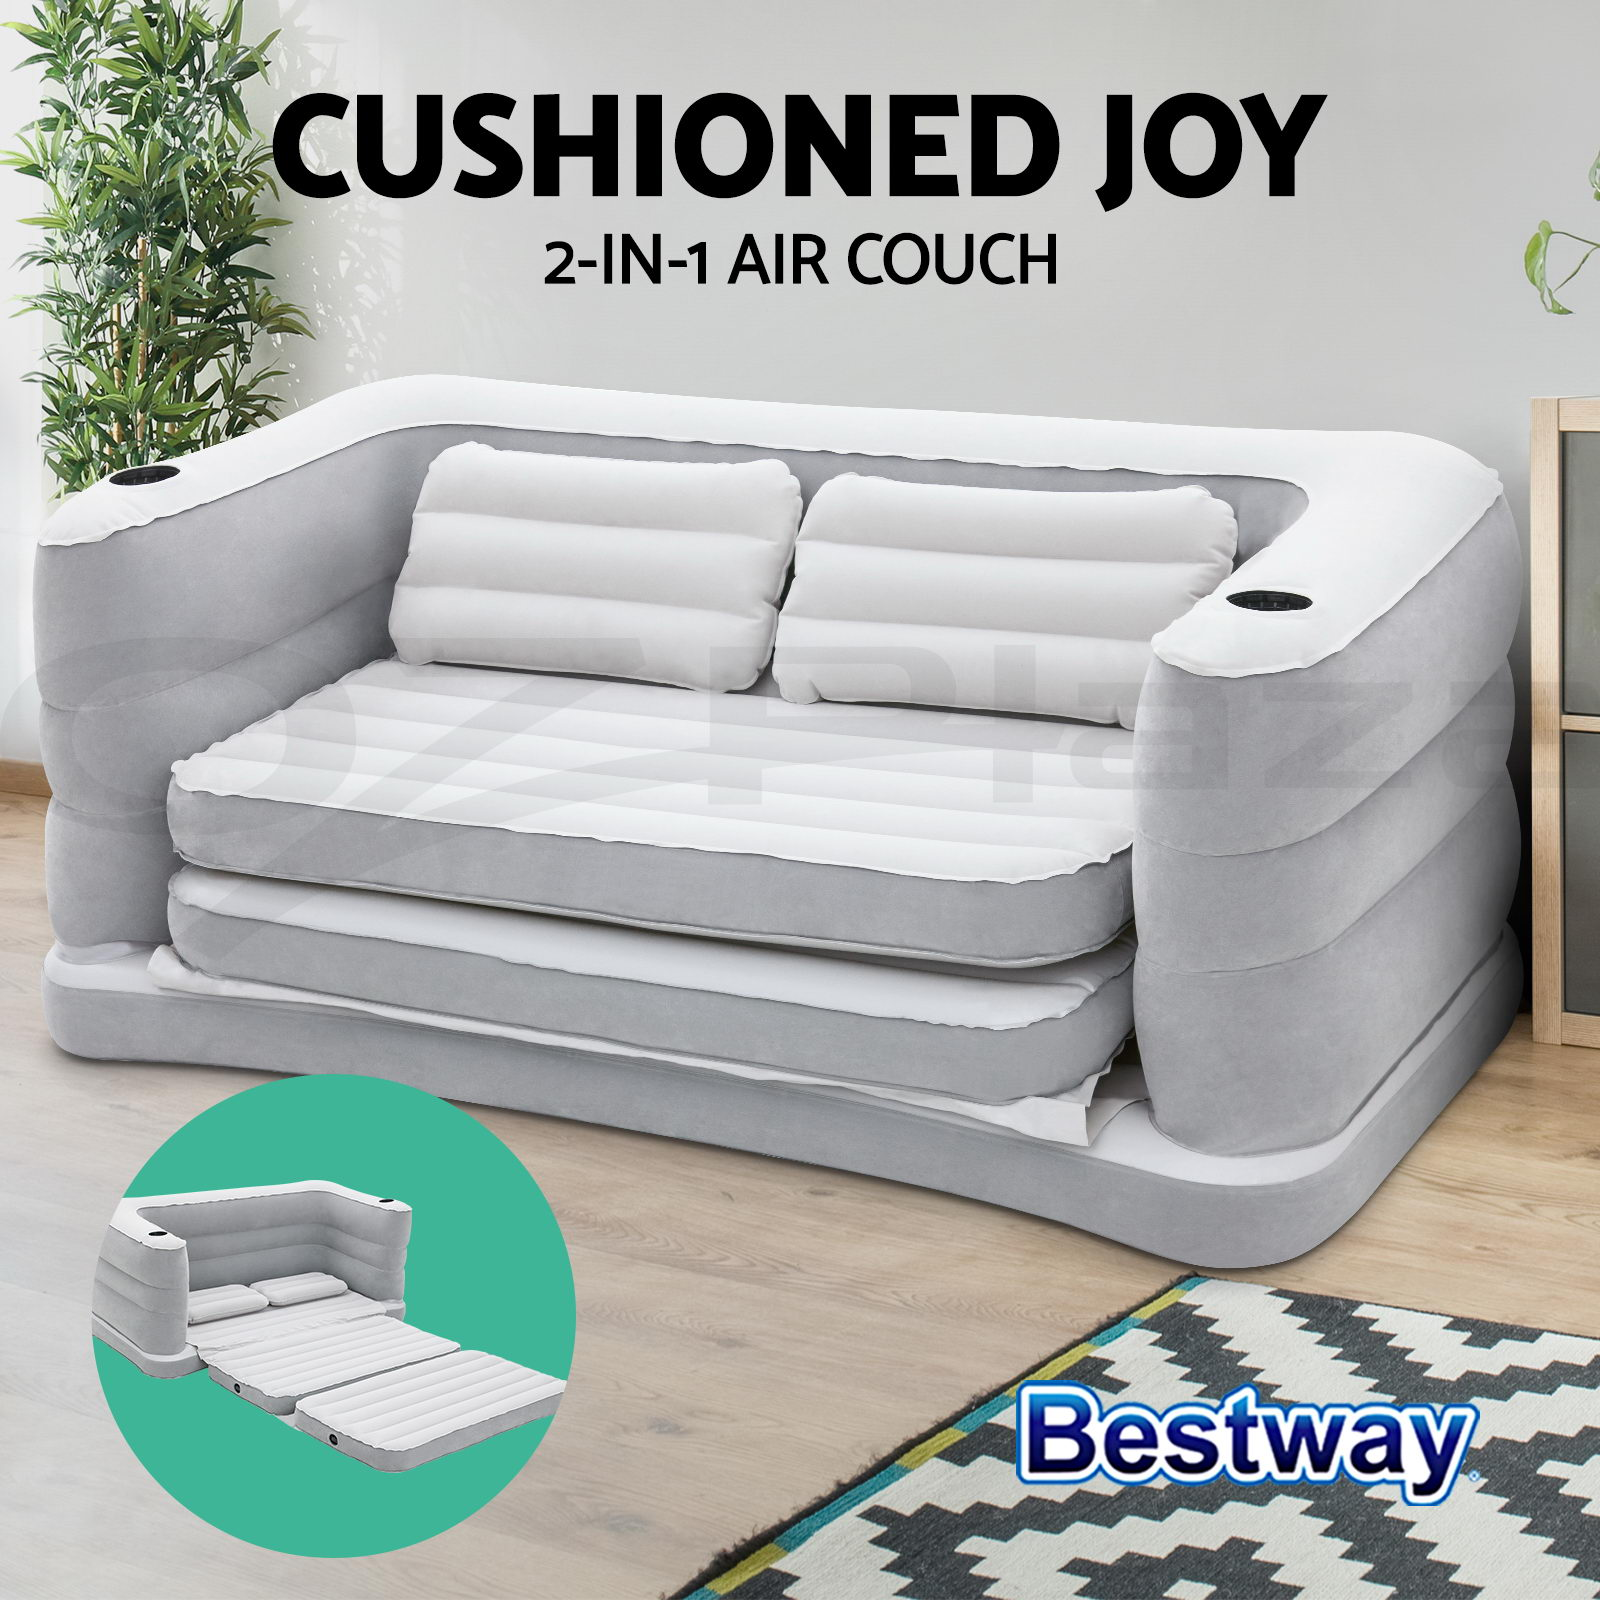 bestway inflatable air sofa couch bed cindy crawford home sidney road taupe mattress sleeping mats